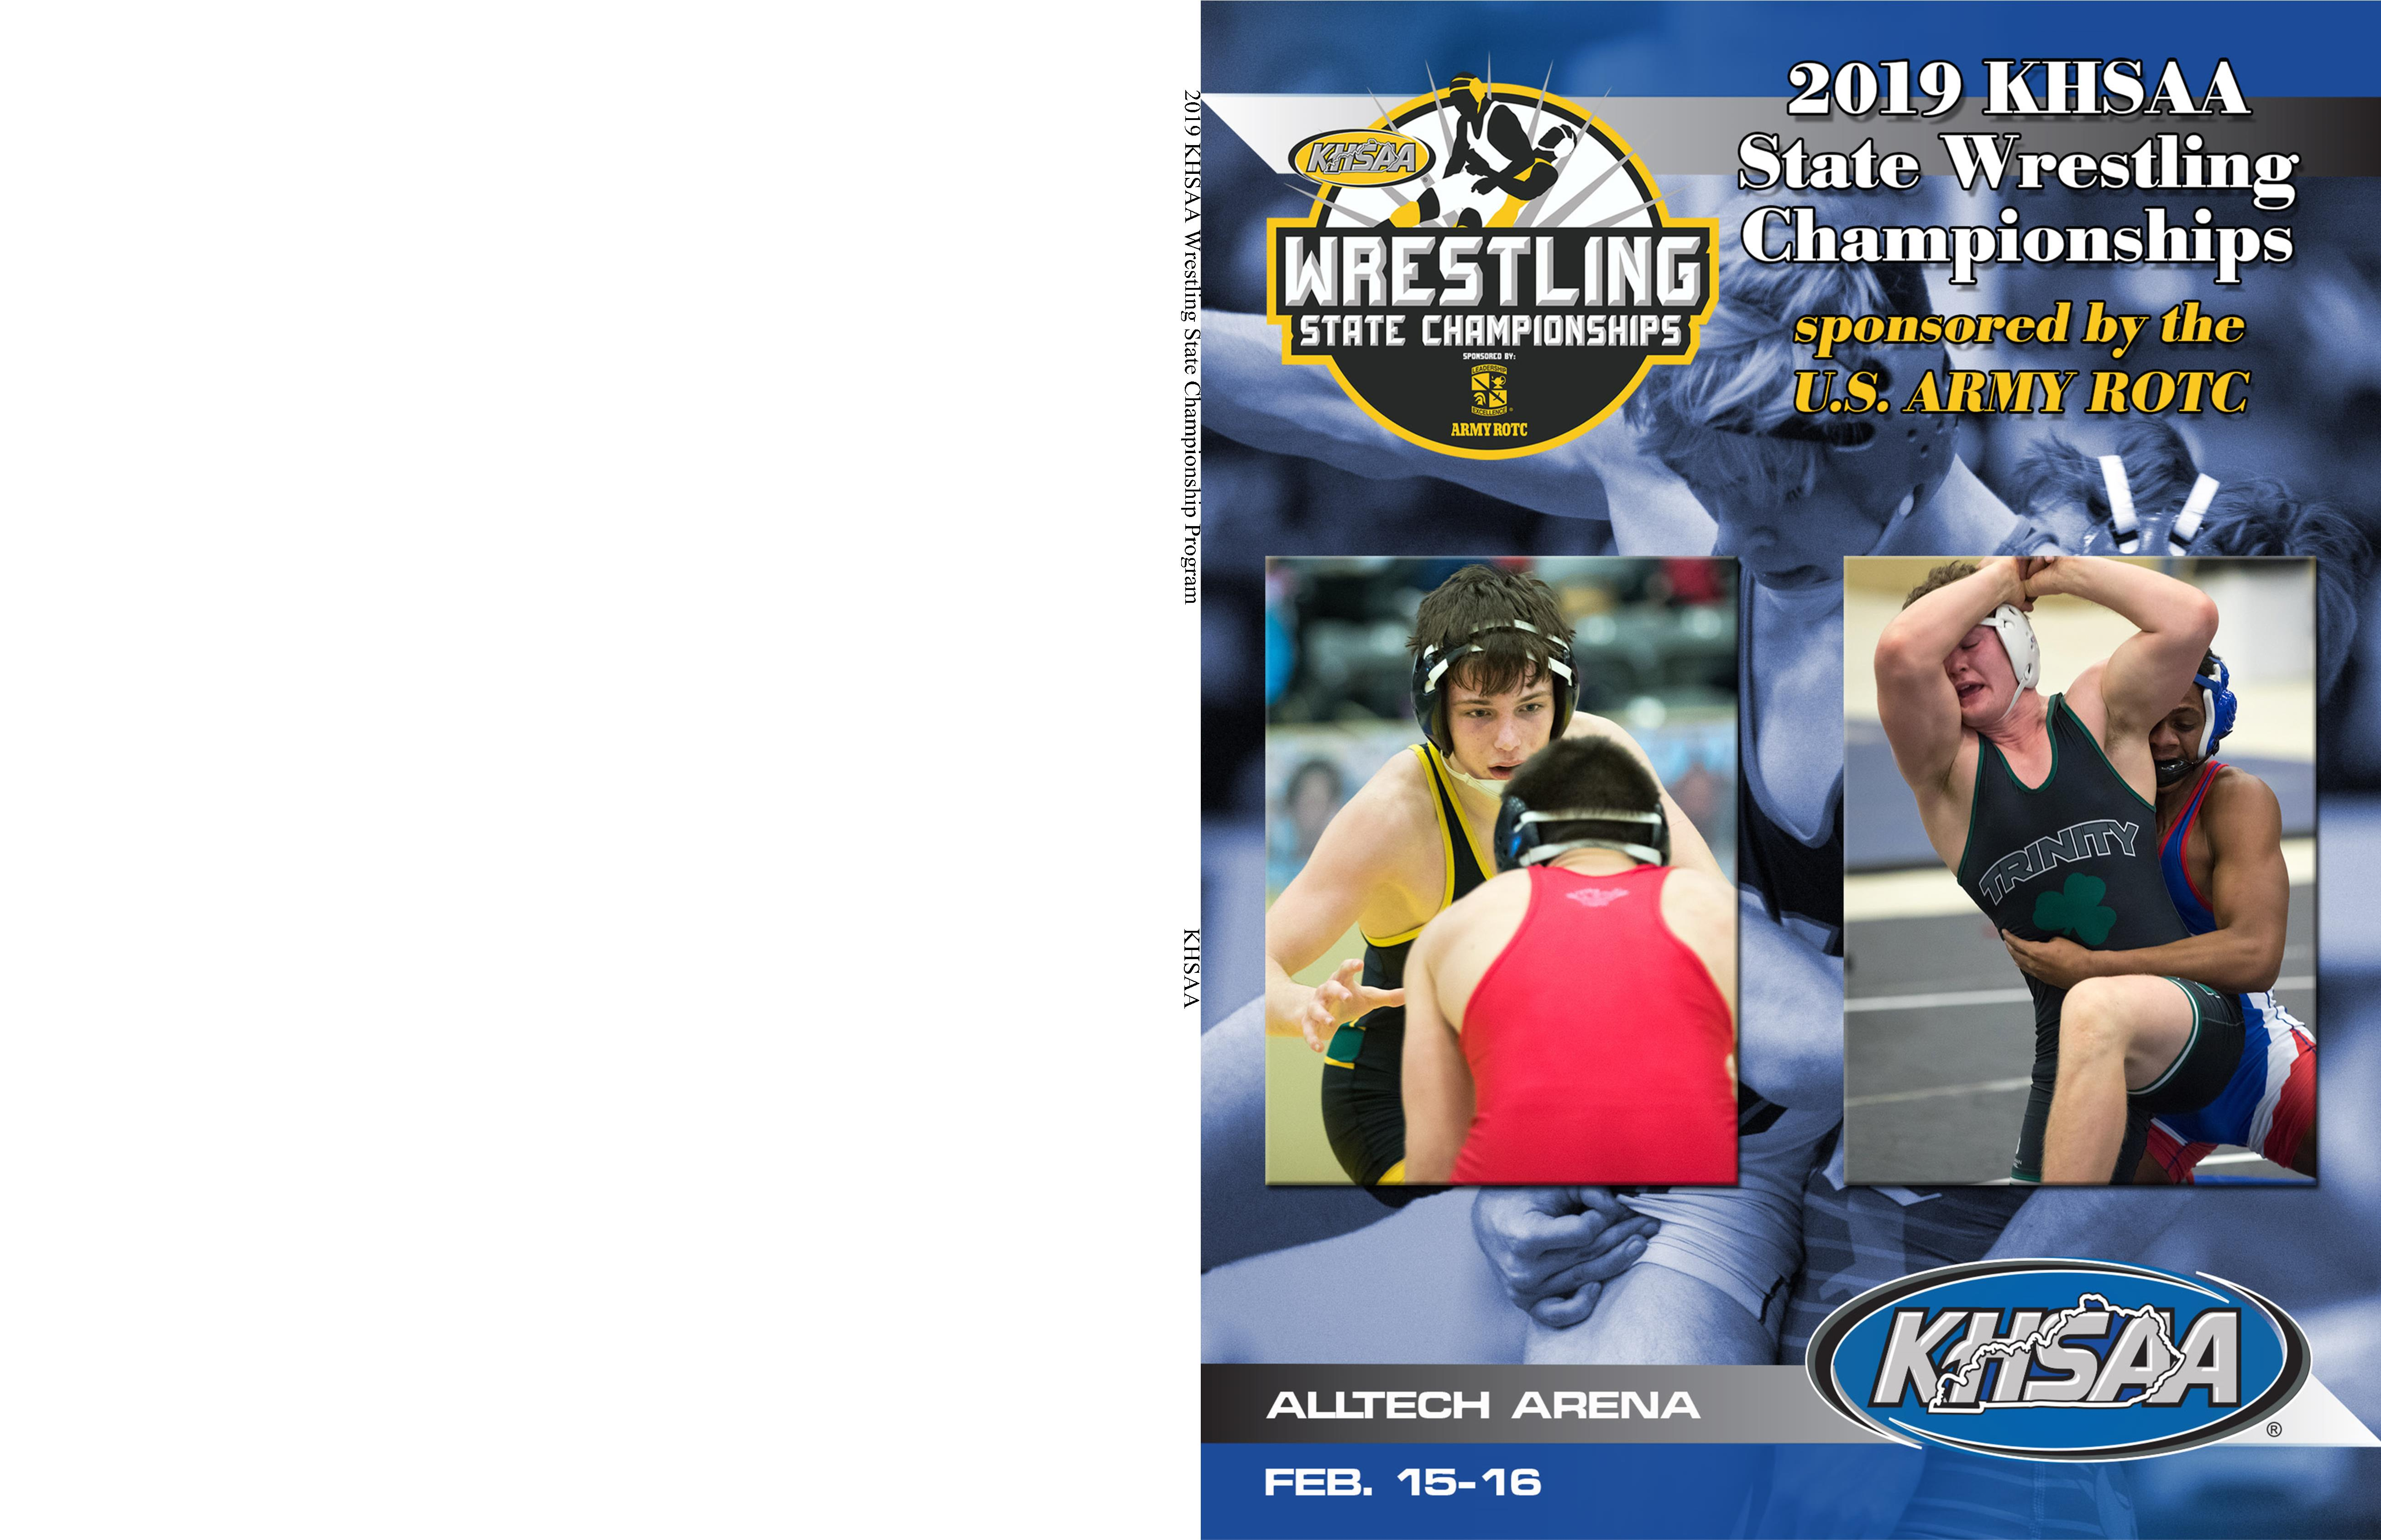 2019 KHSAA Wrestling State Championship Program cover image